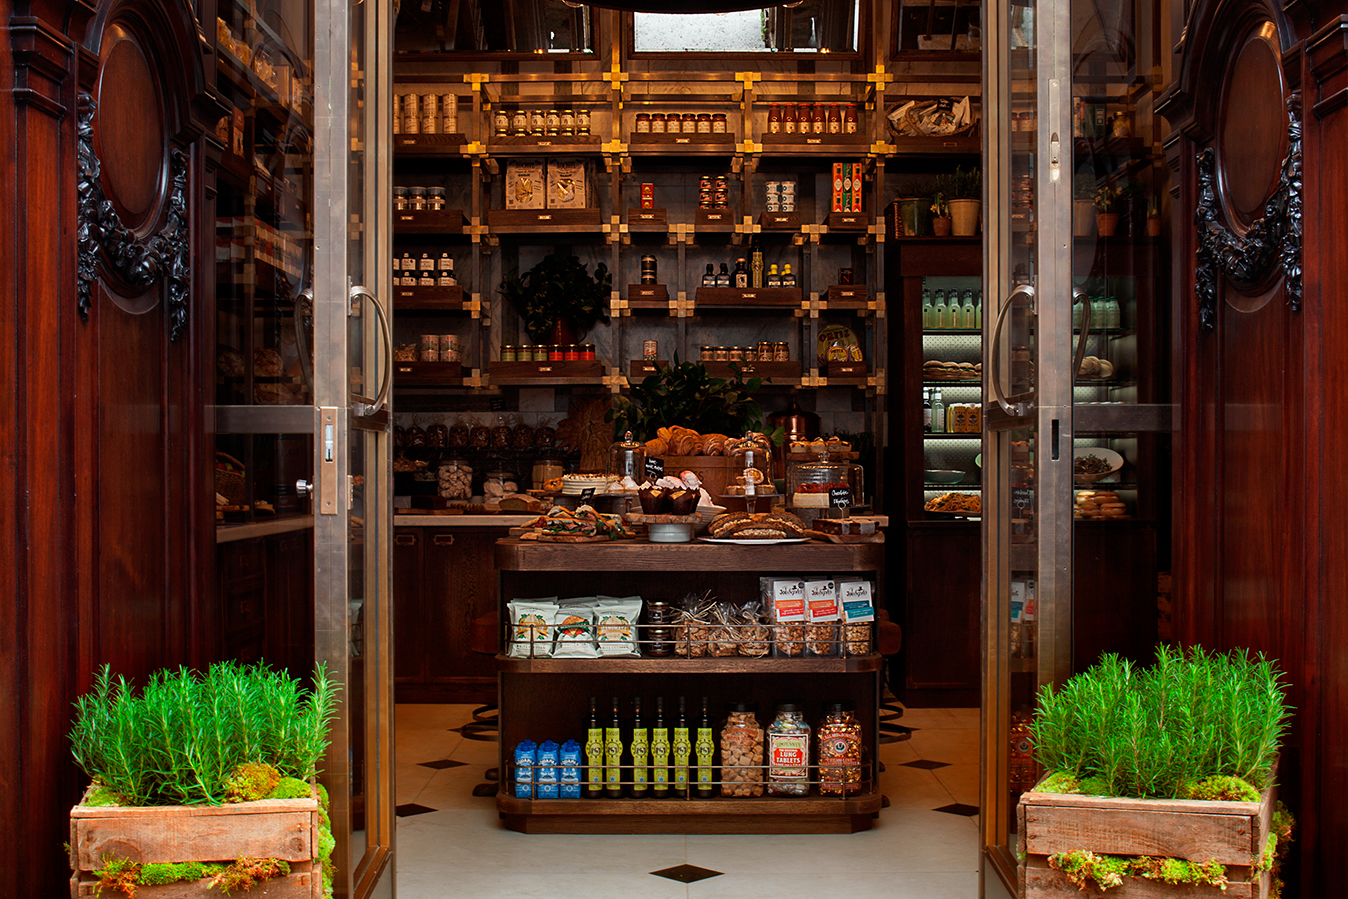 The Deli At Holborn Dining Room